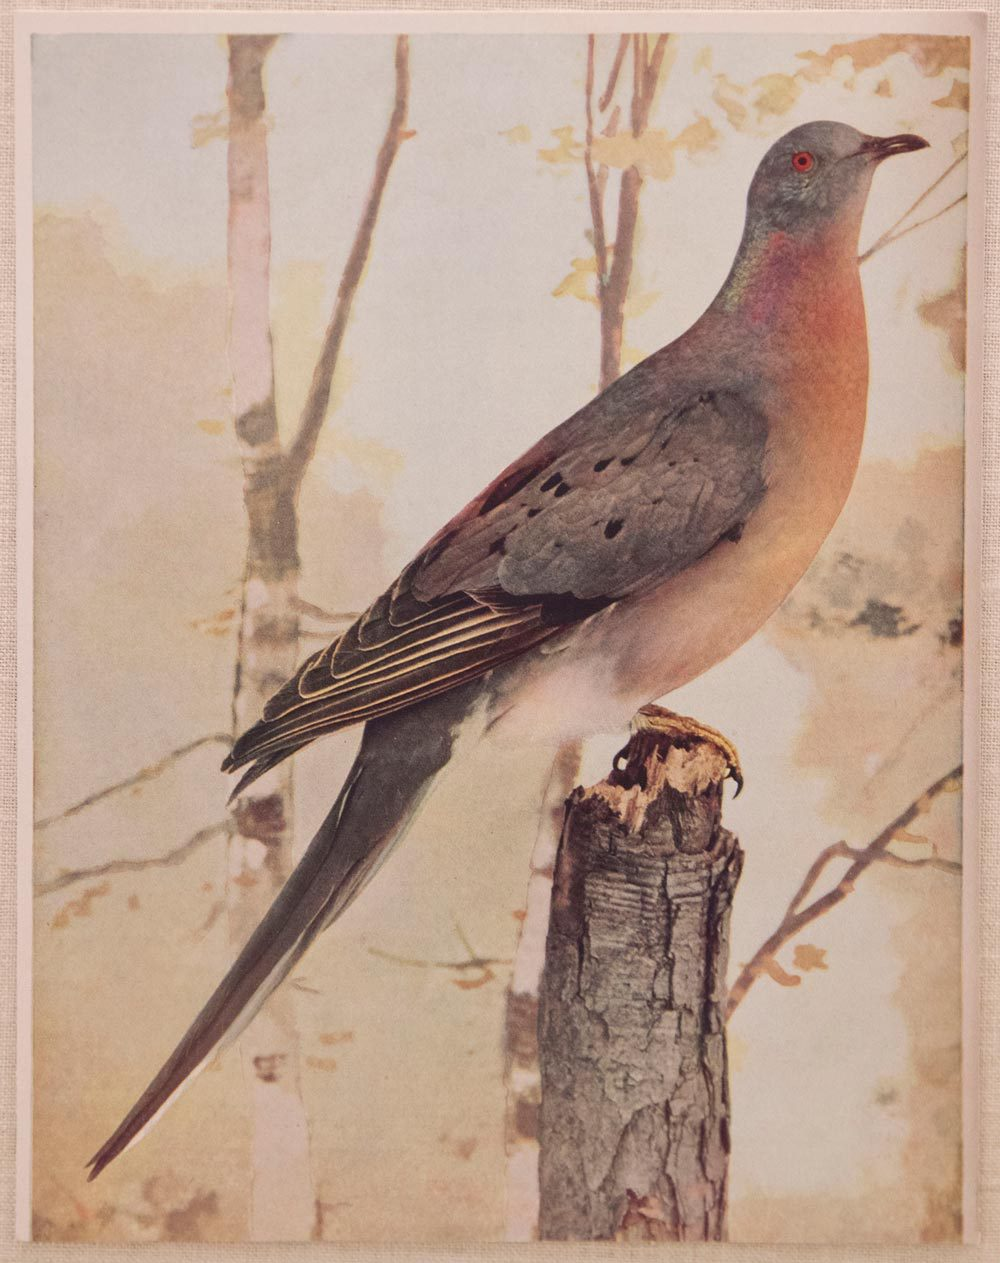 Passenger pigeons were once the most numerous bird in North America, said to darken the sky and create thunderous noise when they migrated in flocks of millions.